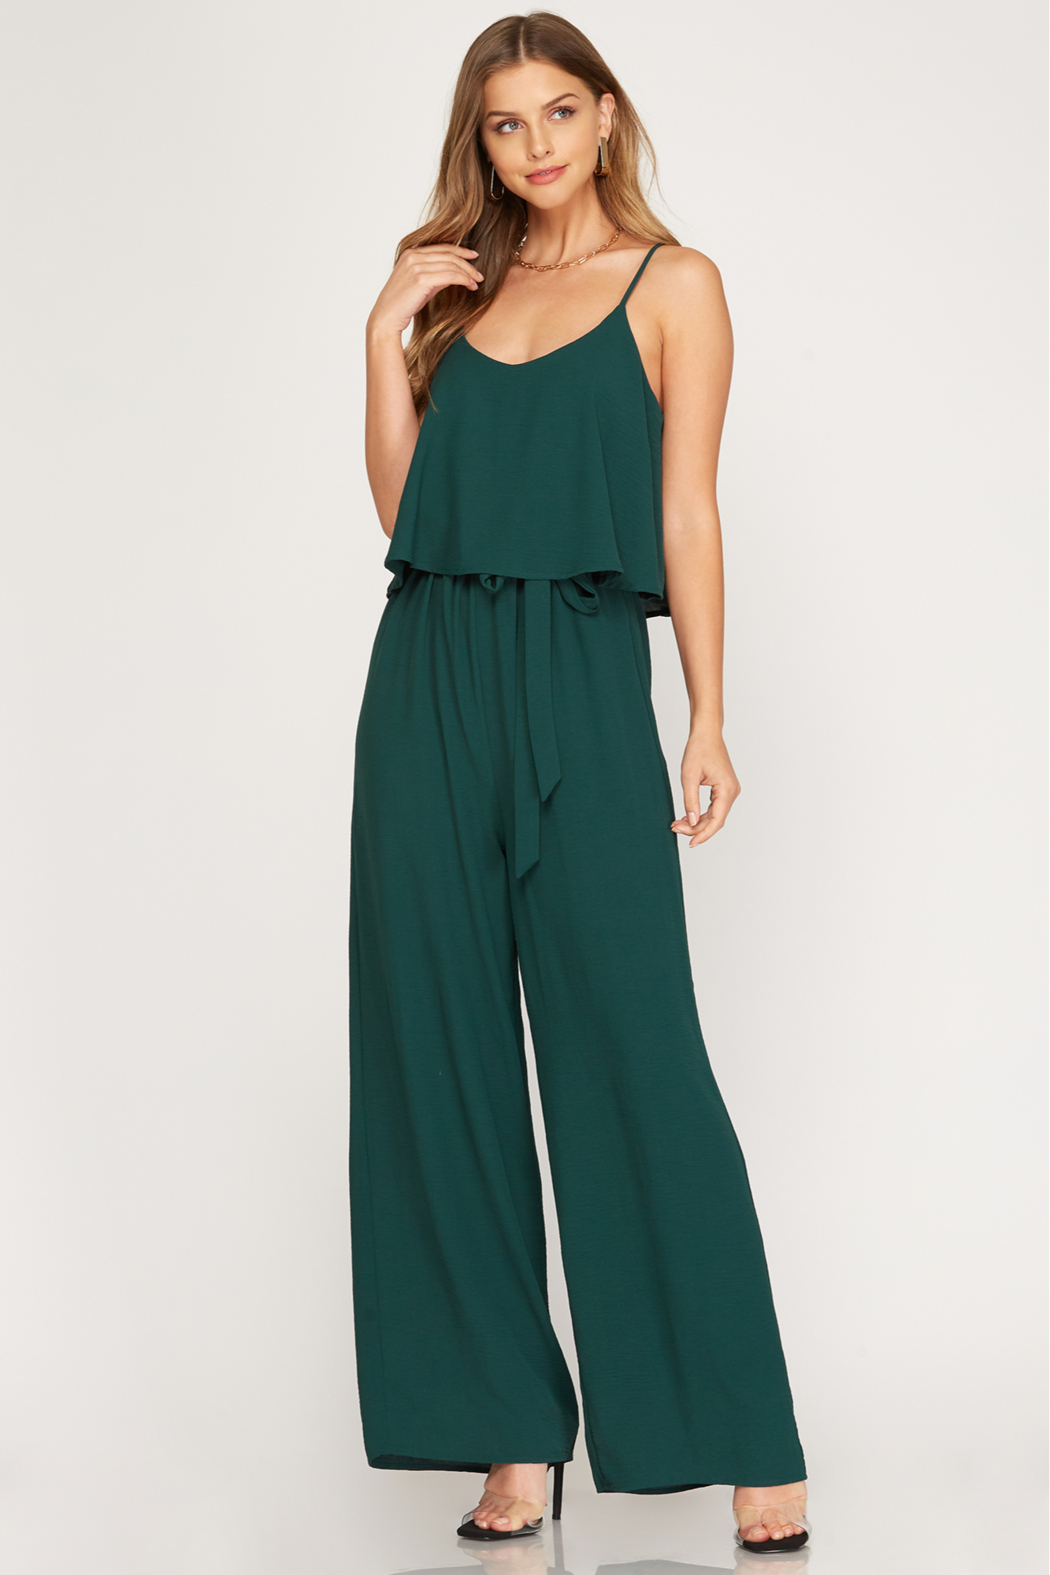 She and Sky Woven Cami Ruffled Overlay Jumpsuit - Main Image